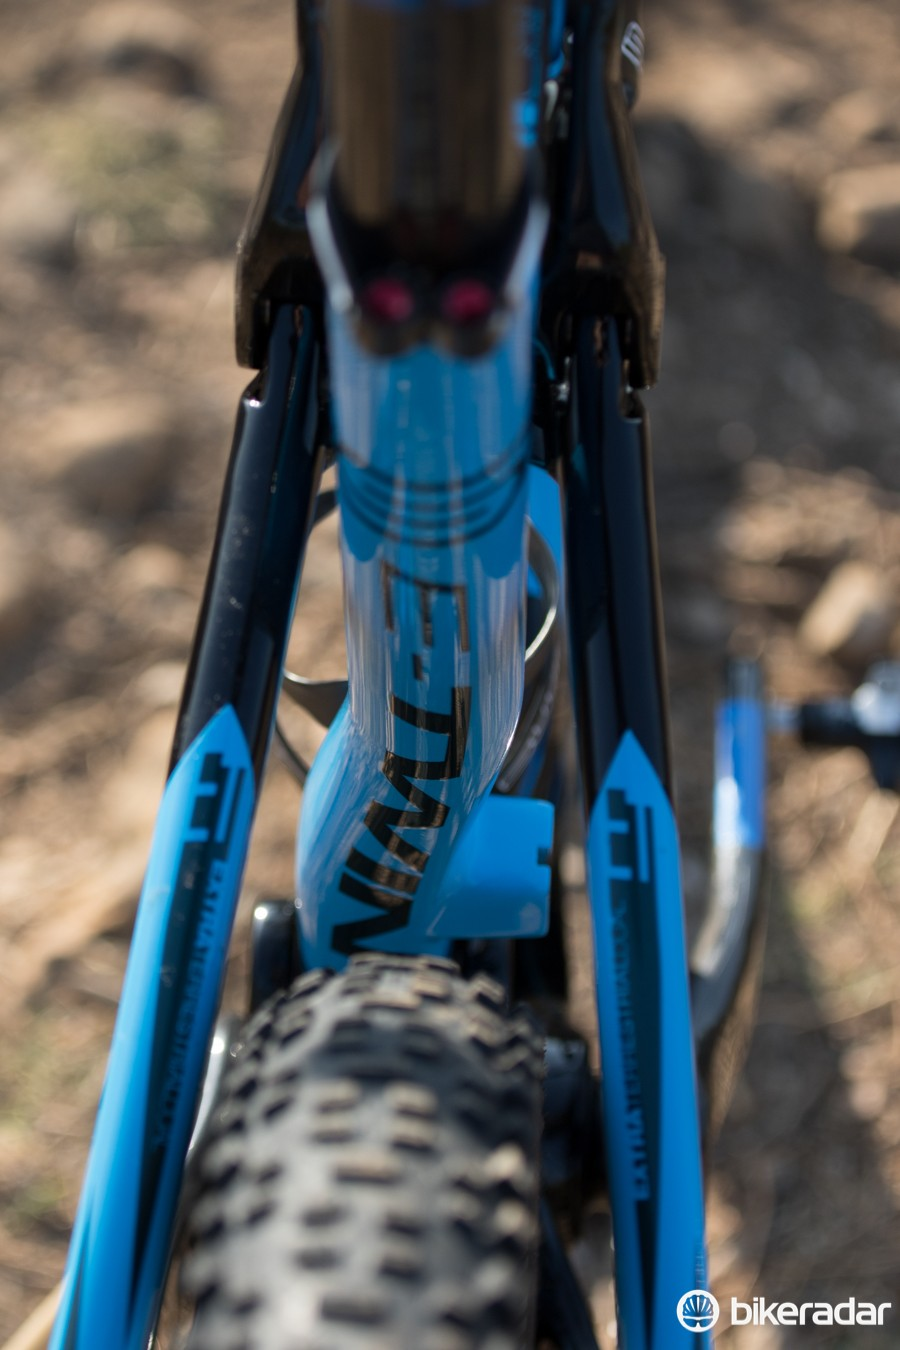 The seat tube is kinked to allow front derailleur clearance